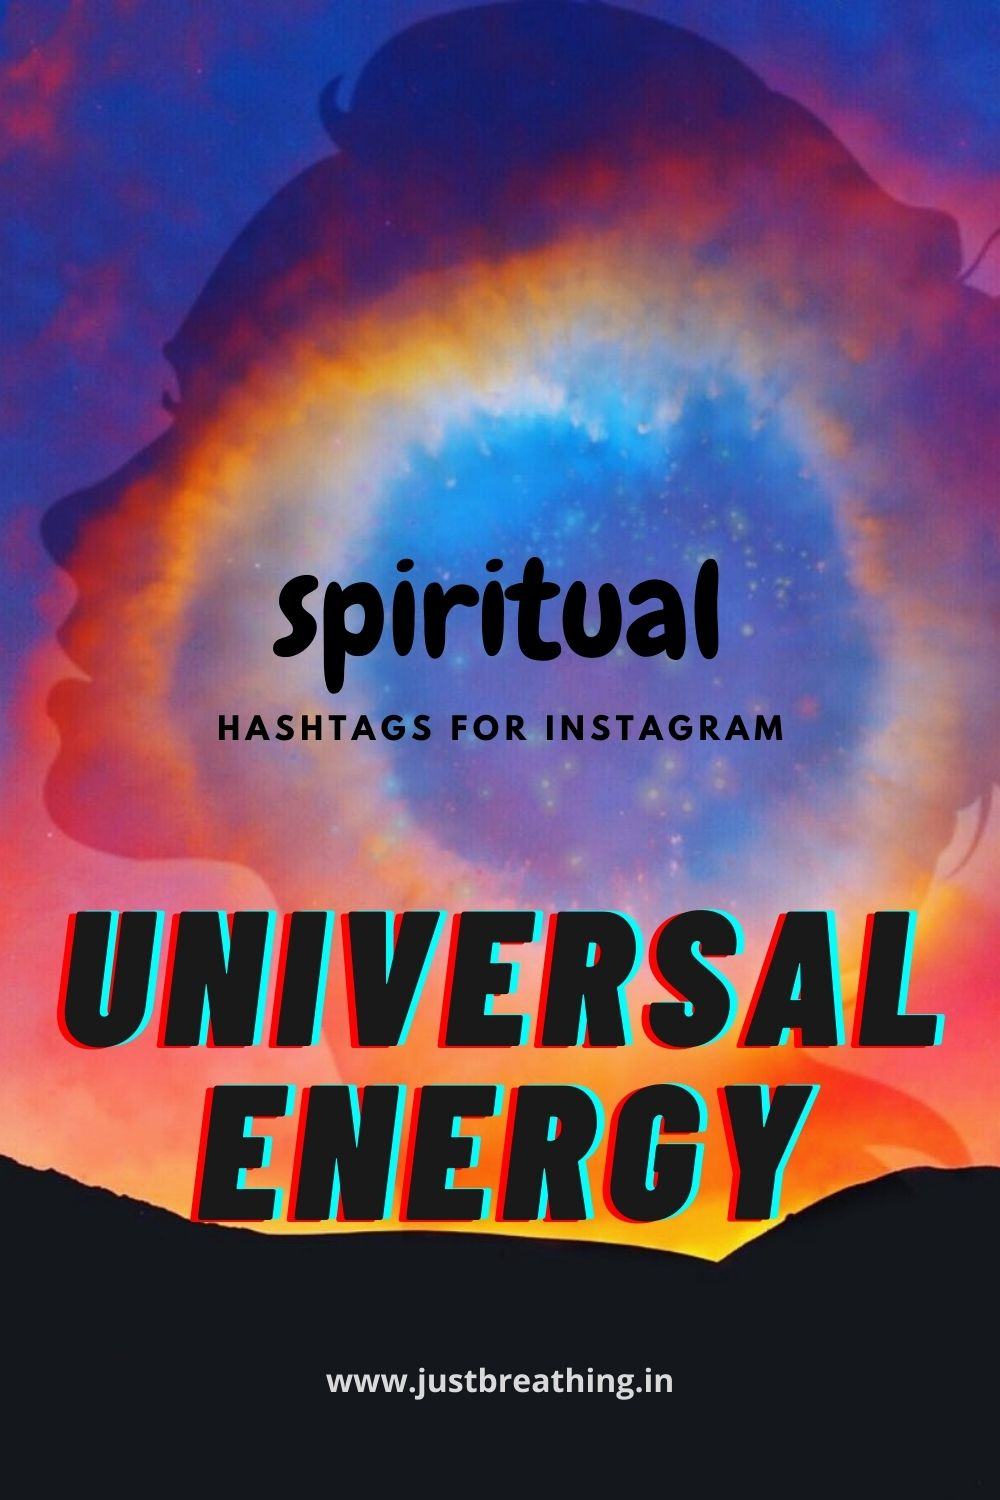 Best hashtags of Universal energy and spiritual hashtags for instagram